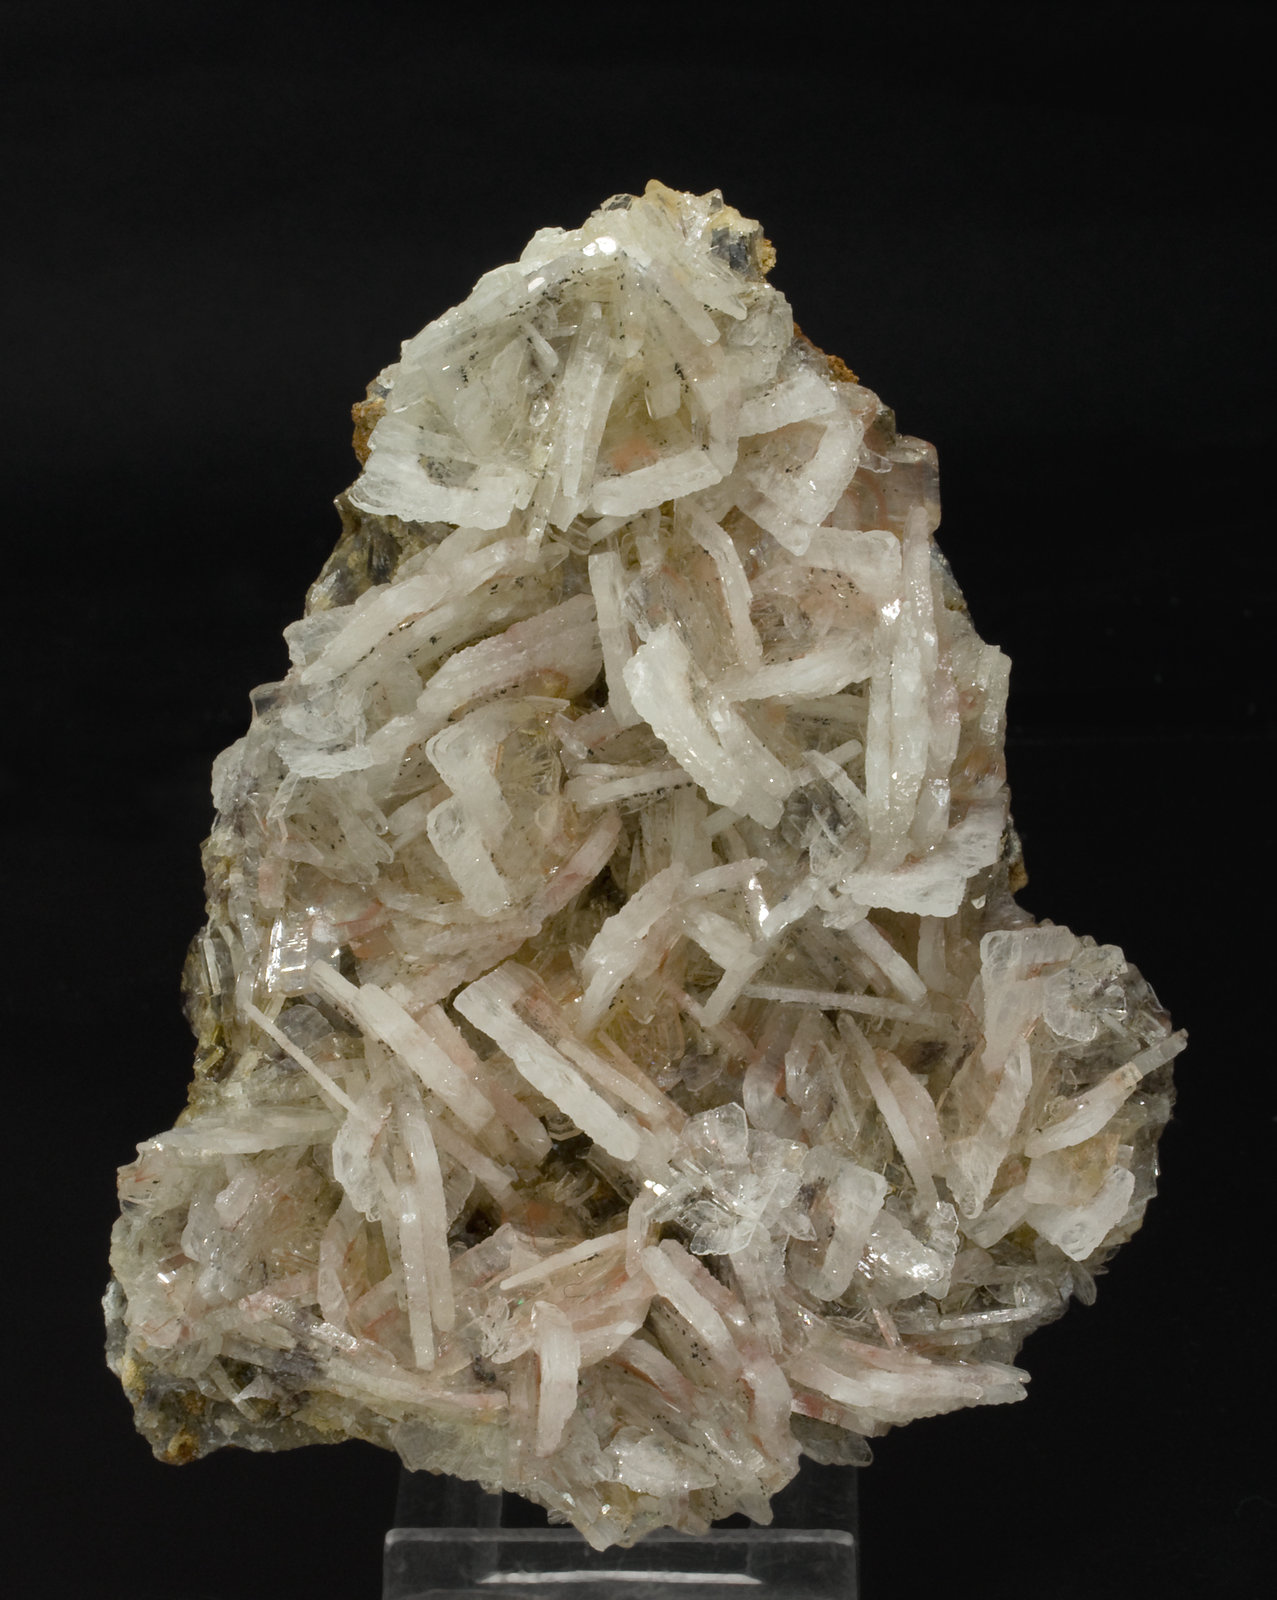 Barite with Realgar inclusions